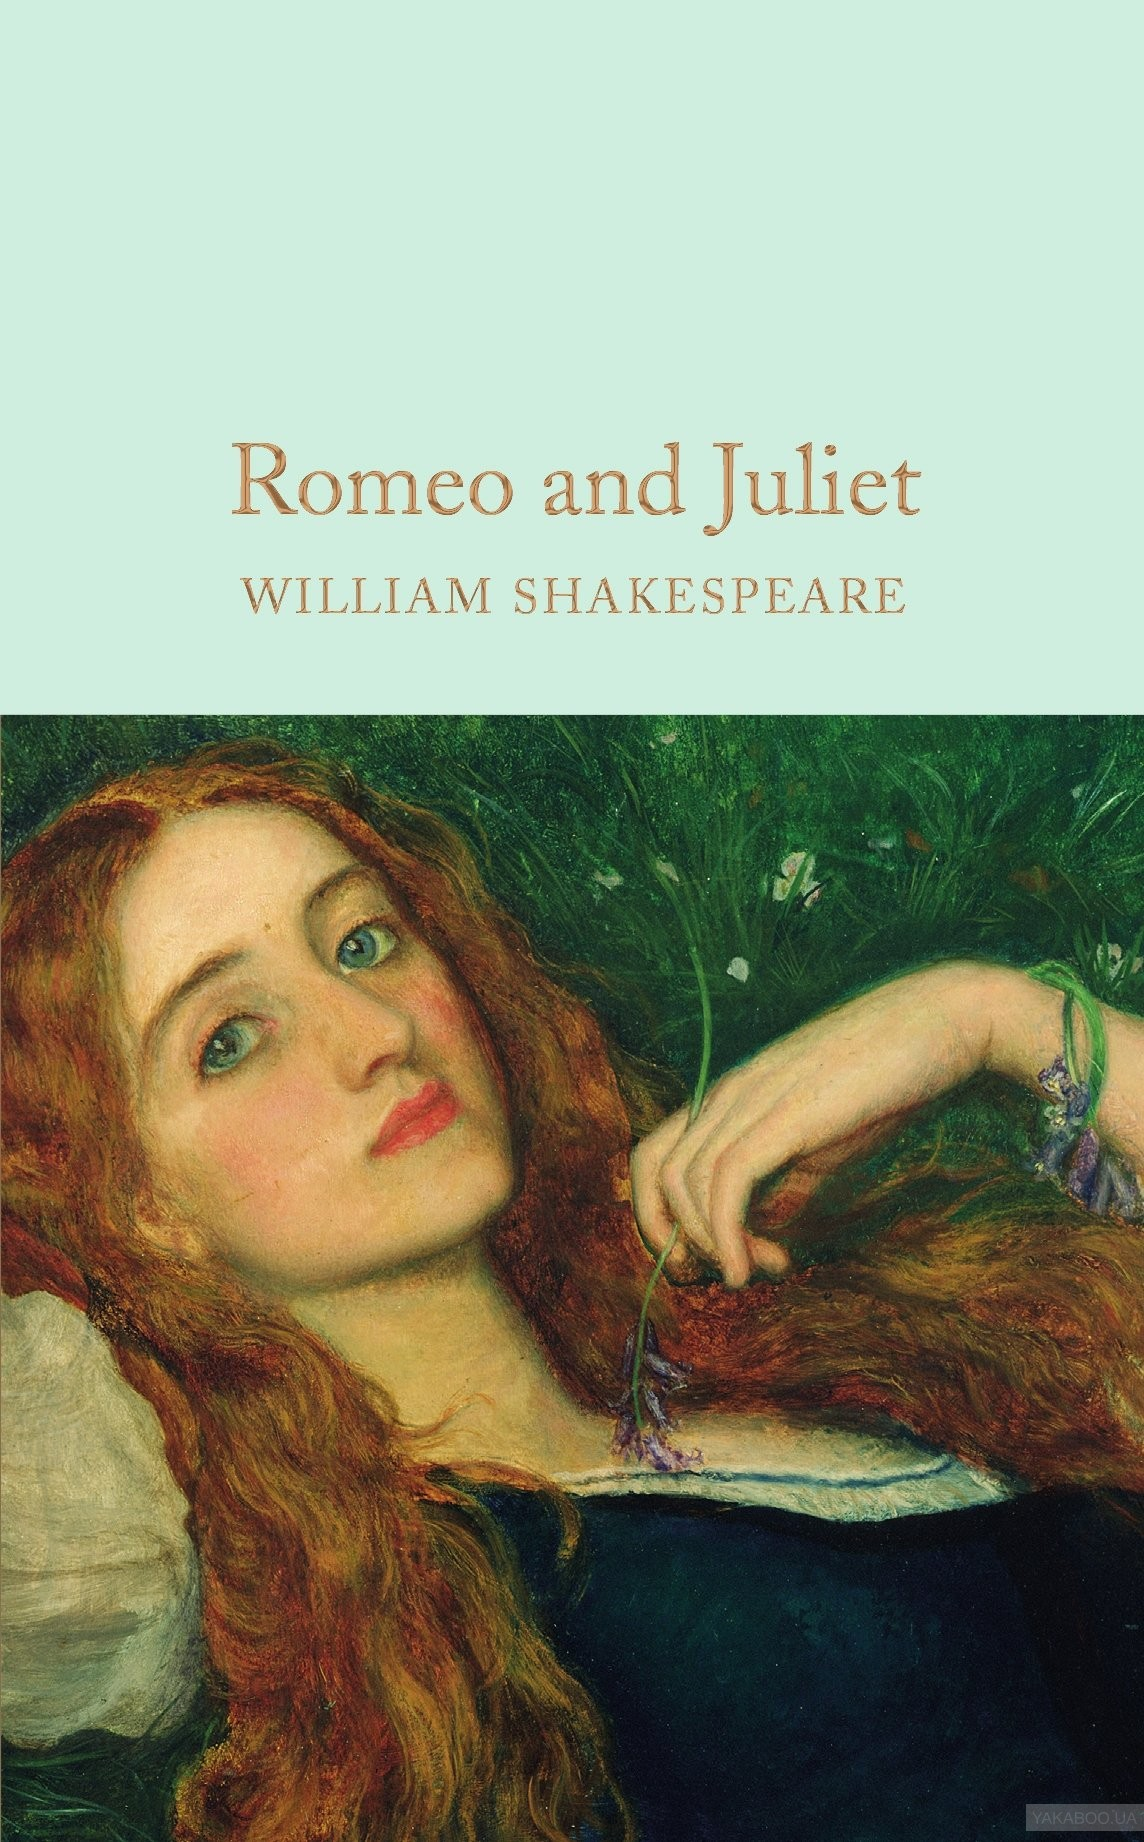 an analysis of the downfall of juliet in william shakespeares romeo and juliet Analysis of william shakespeare's romeo and juliet 'romeo and juliet' was a play written by william shakespearein 1595 william shakespeare died on st george's day, 23rd april, 1616, making.